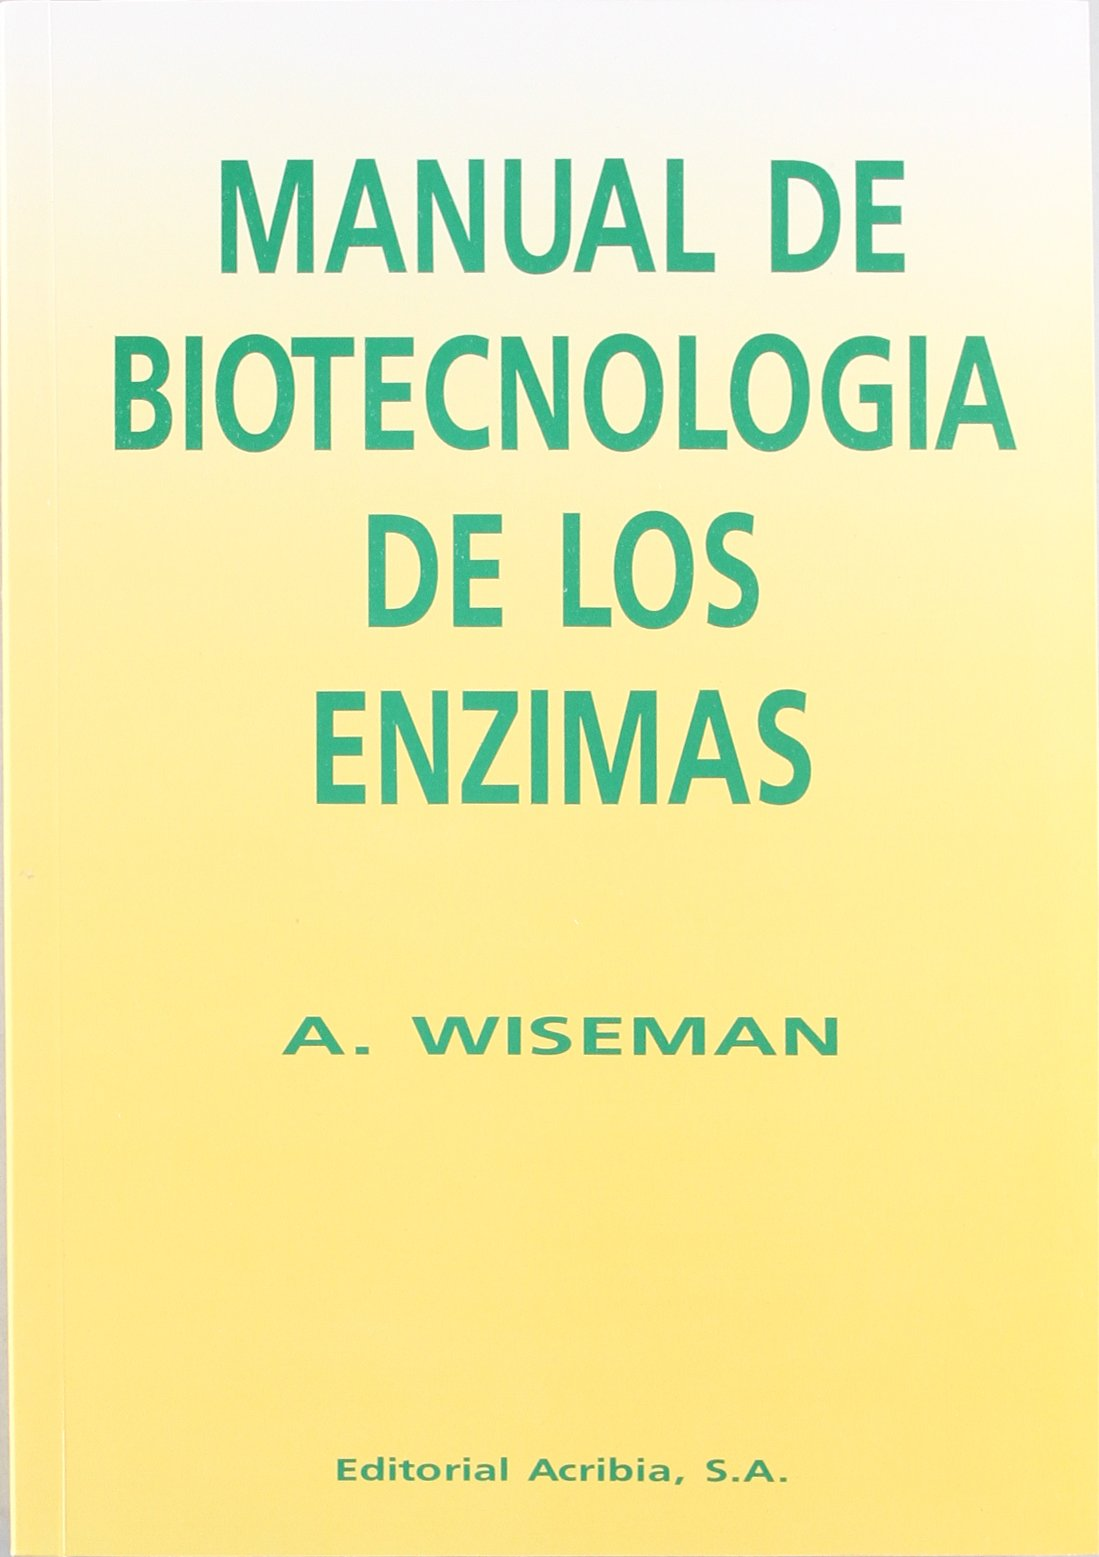 Manual de biotecnología de los enzimas: Amazon.es: A ...